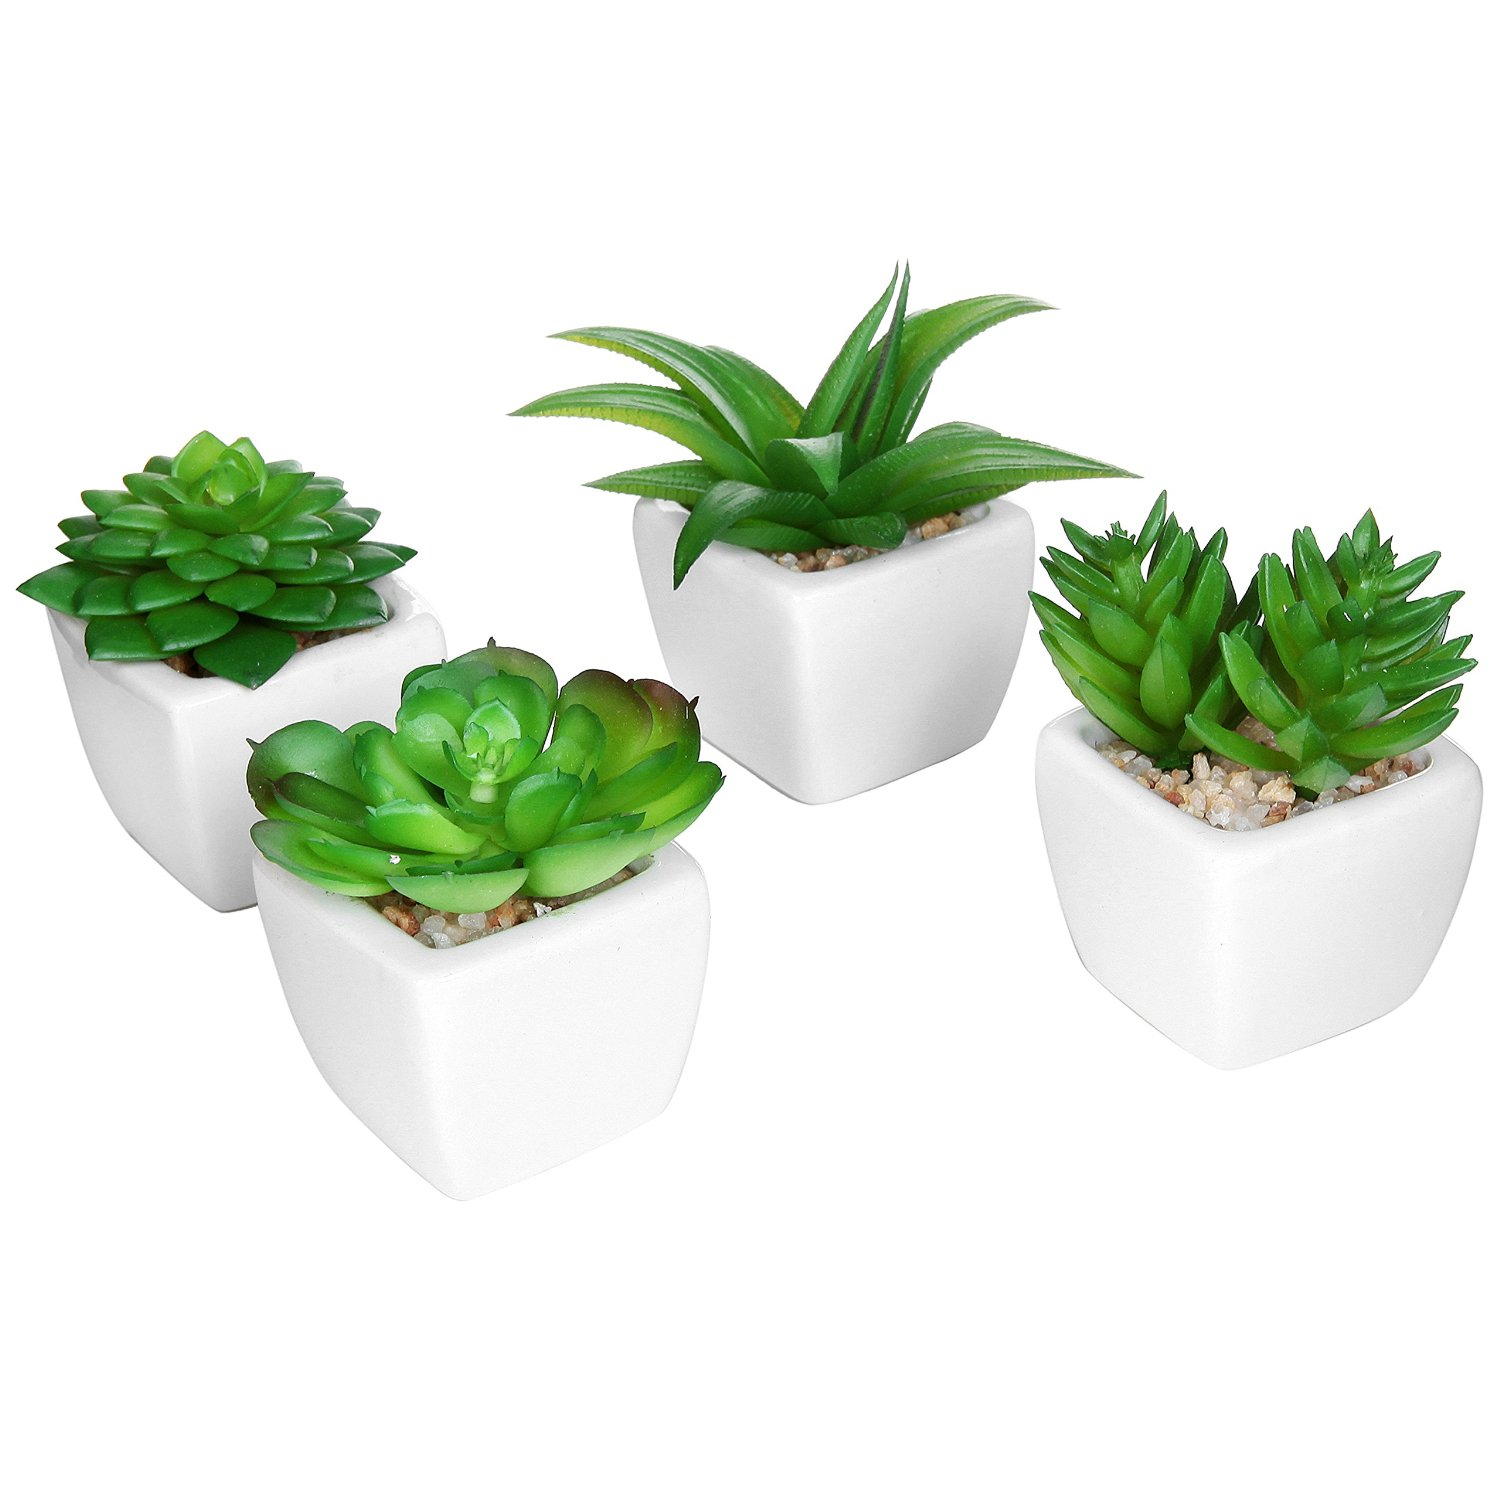 Small Pot Plants The 10 Best Artificial Plants To Use By Your Swimming Pool